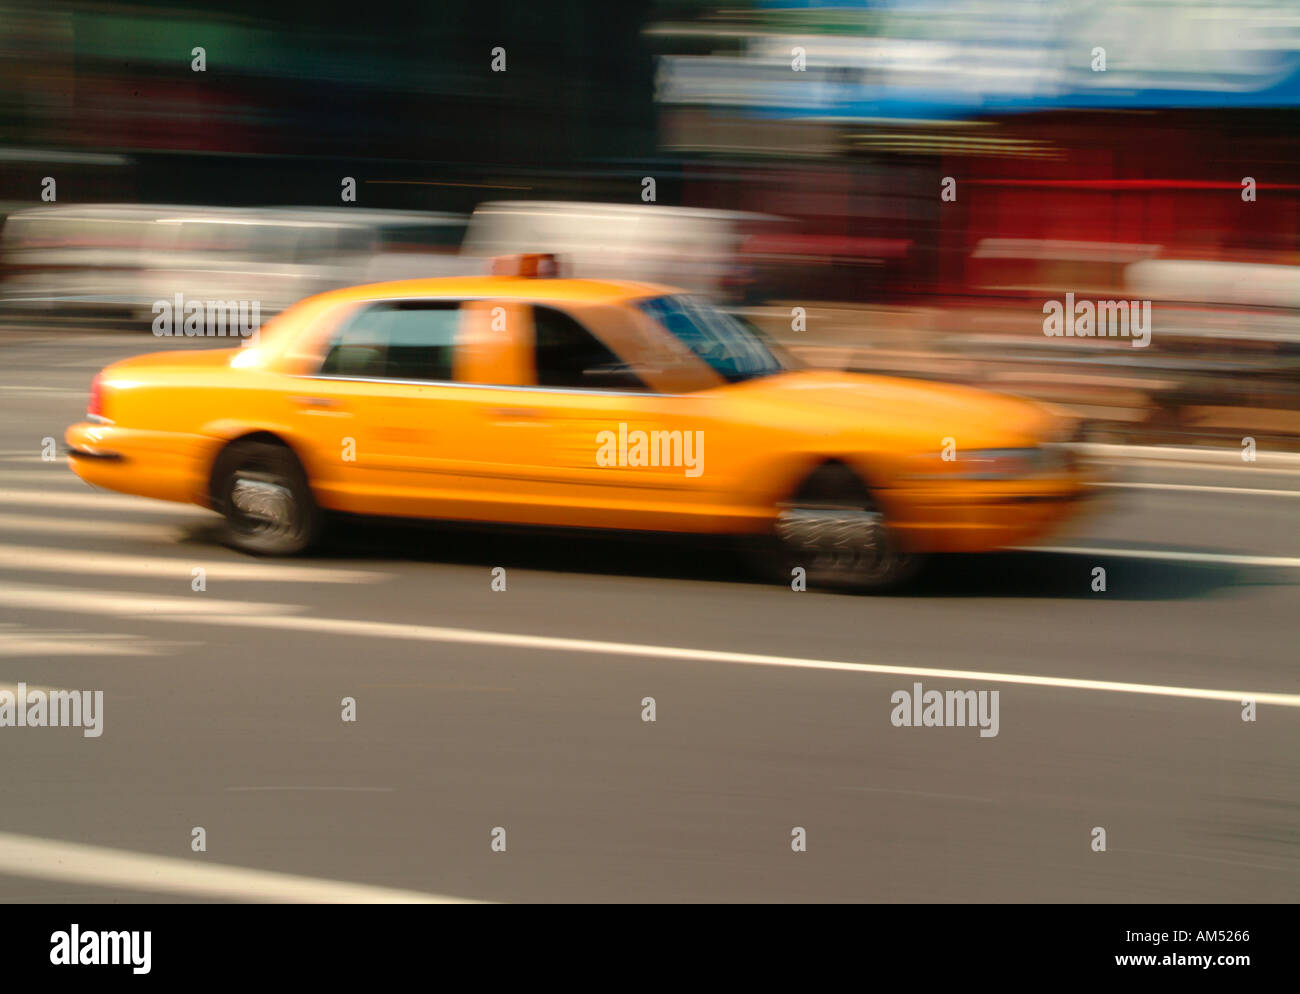 taxi cab speeding up 6th Ave in Manhattan - Stock Image